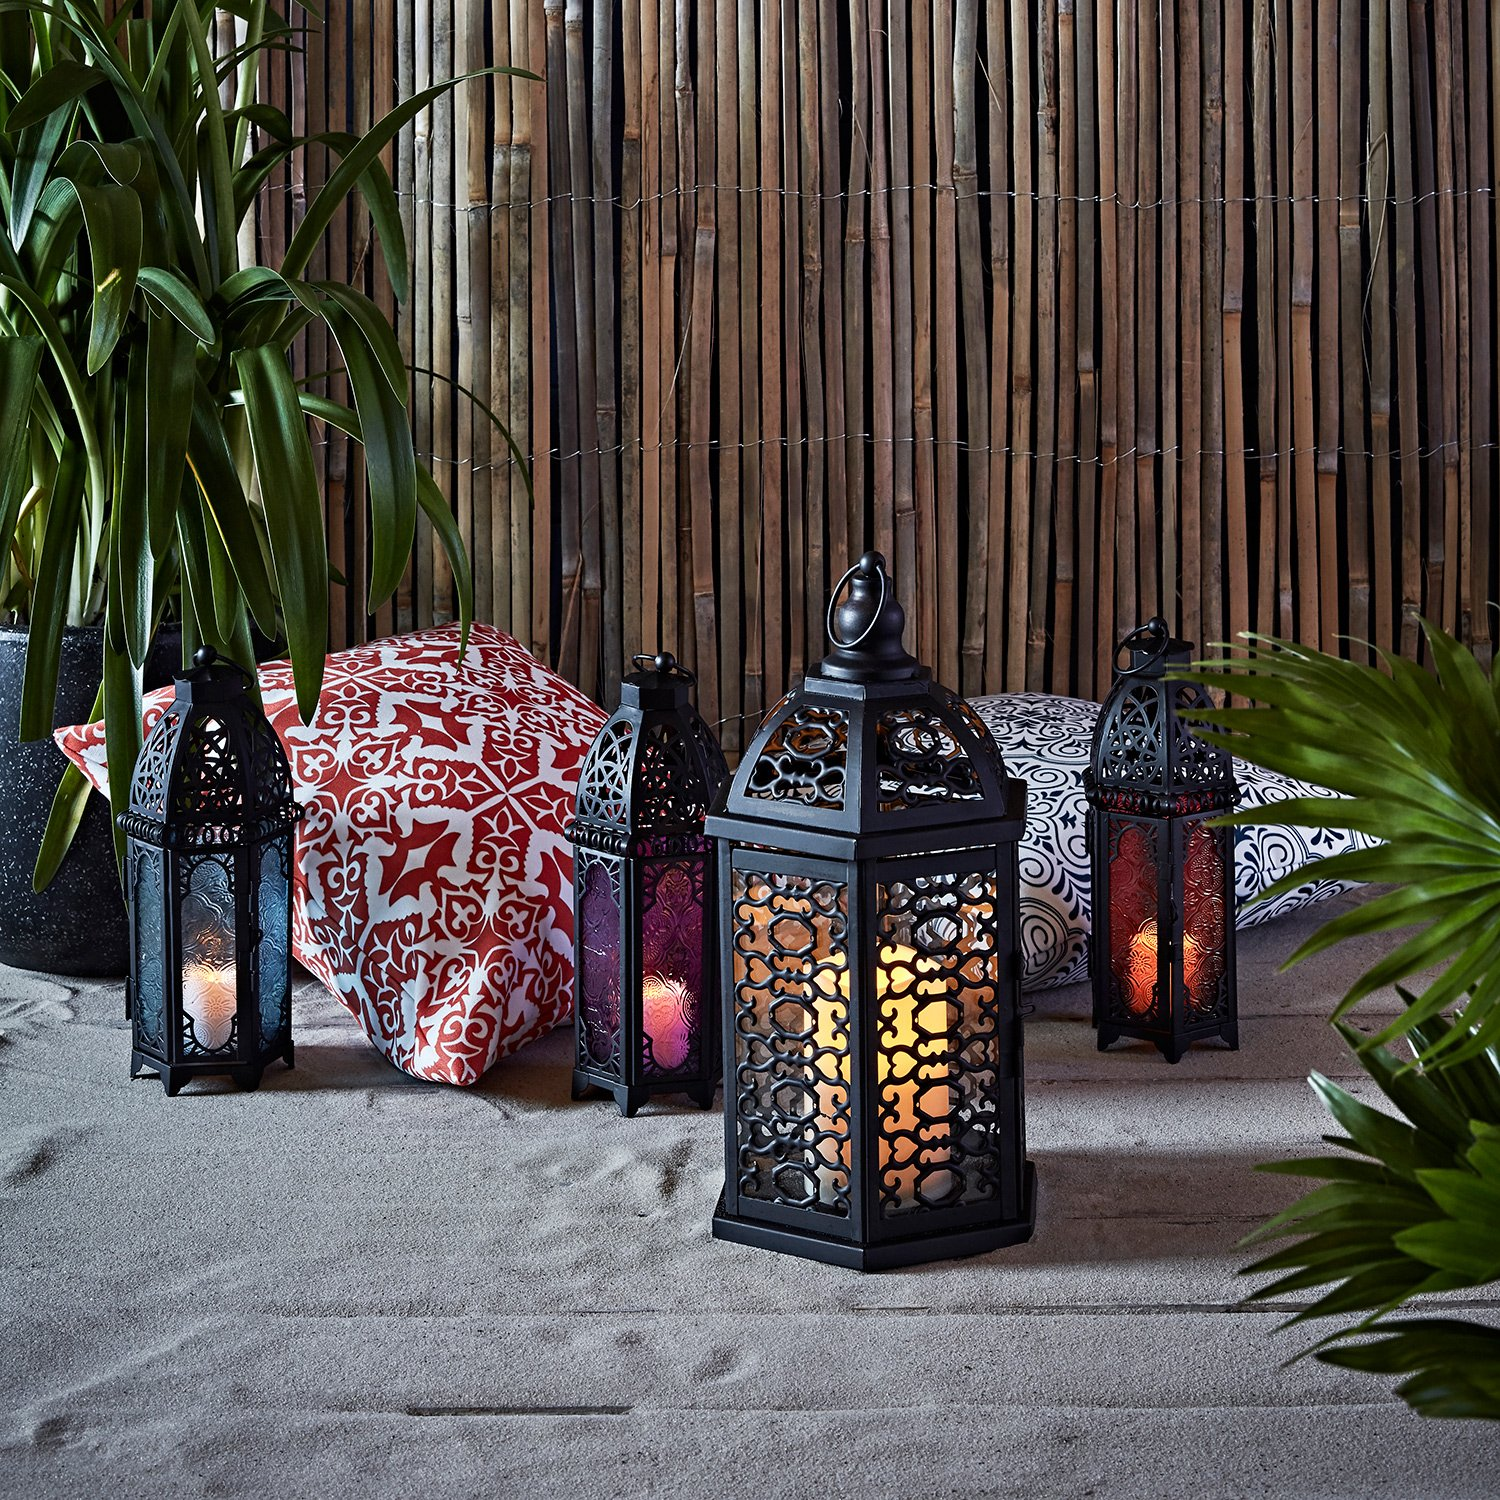 Lights4fun, Inc. Trio of Black Metal Moroccan Indoor Battery Operated LED Flameless Candle Lanterns with Colored Glass by Lights4fun, Inc. (Image #2)